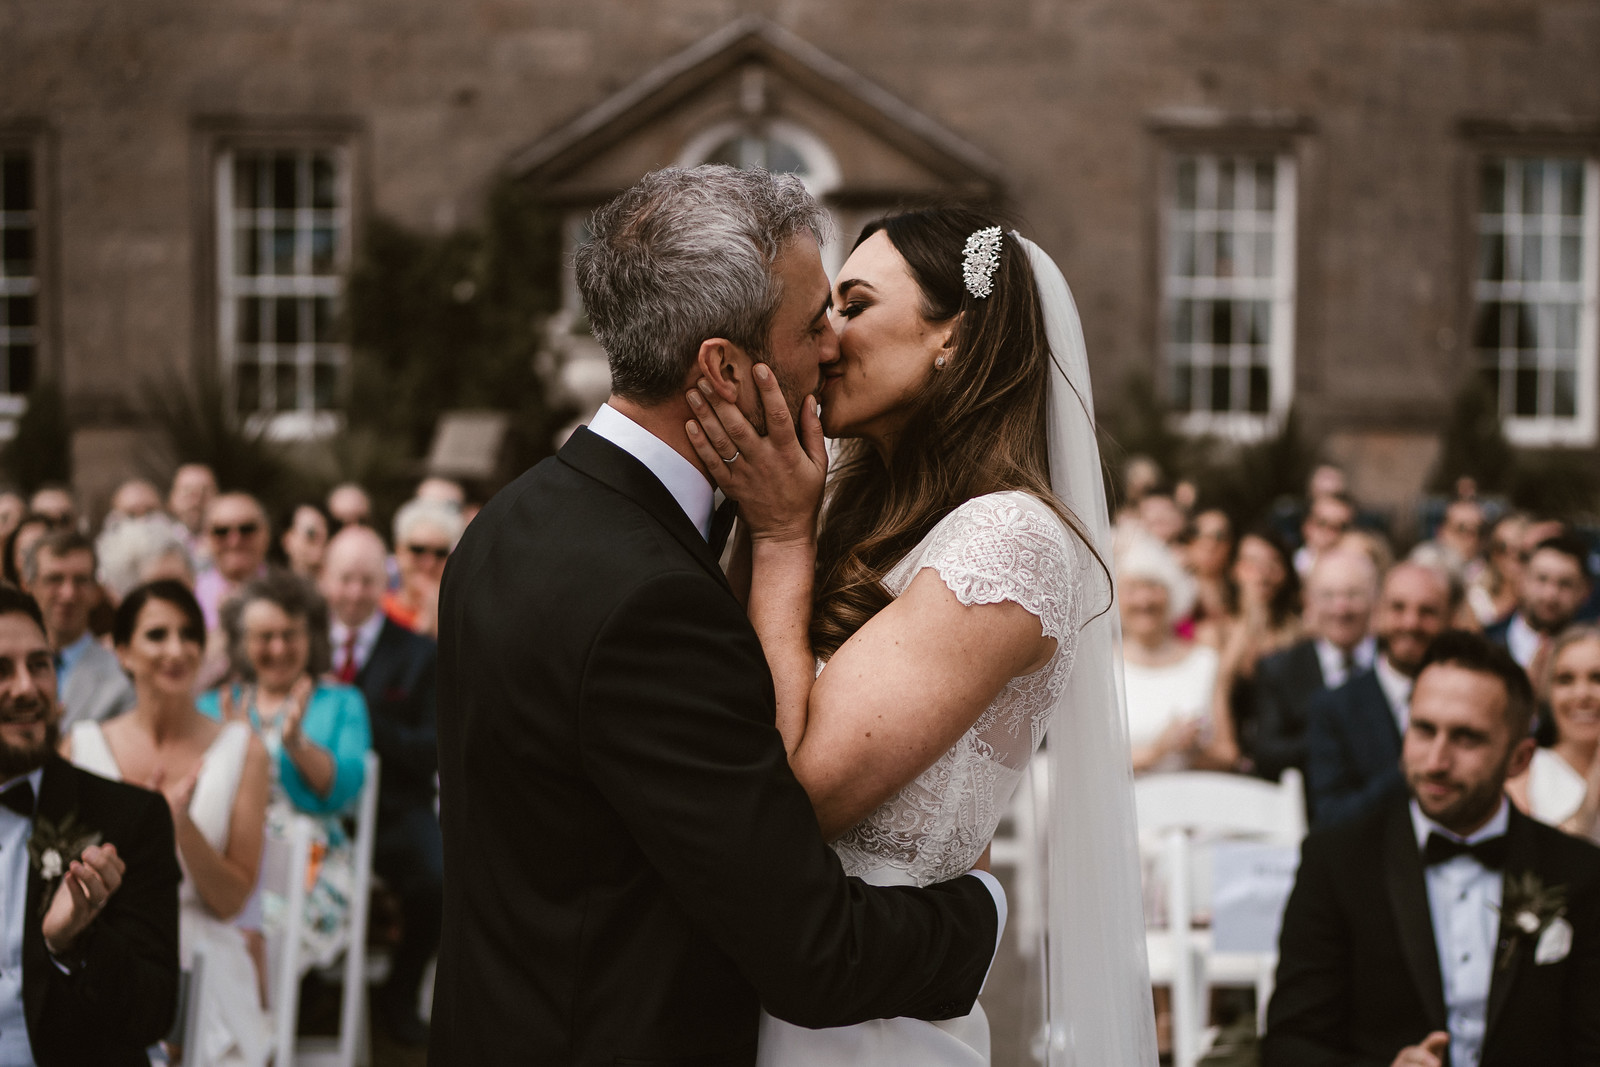 Bride and groom have their first kiss as husband and wife. Wedding pictures